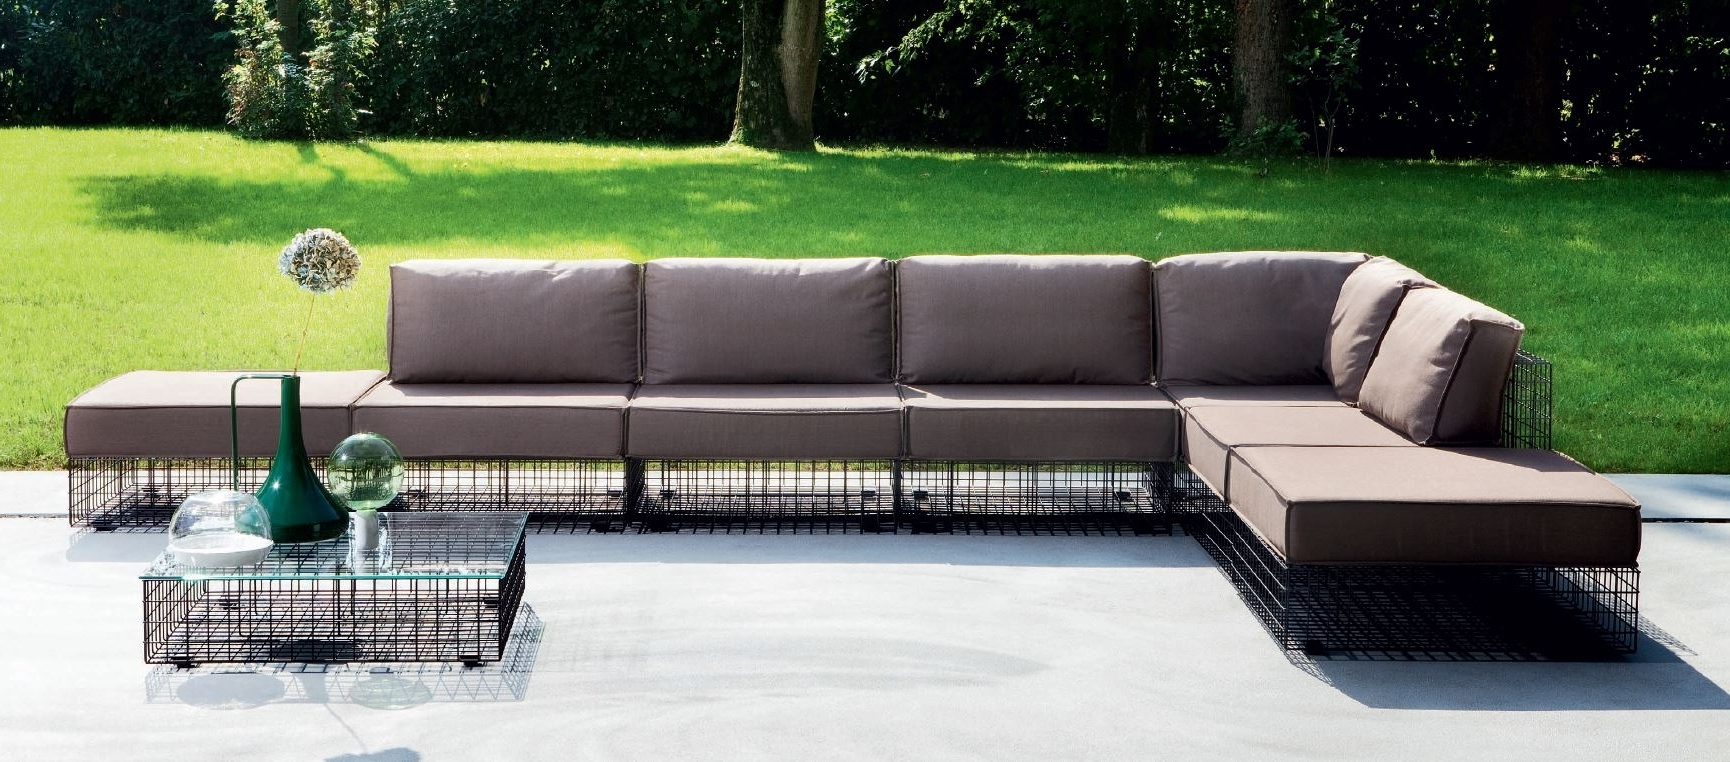 Outdoor Sofas And Chairs Within Well Liked Awesome Modern Metal Garden Furniture Contemporary – Liltigertoo (View 8 of 20)